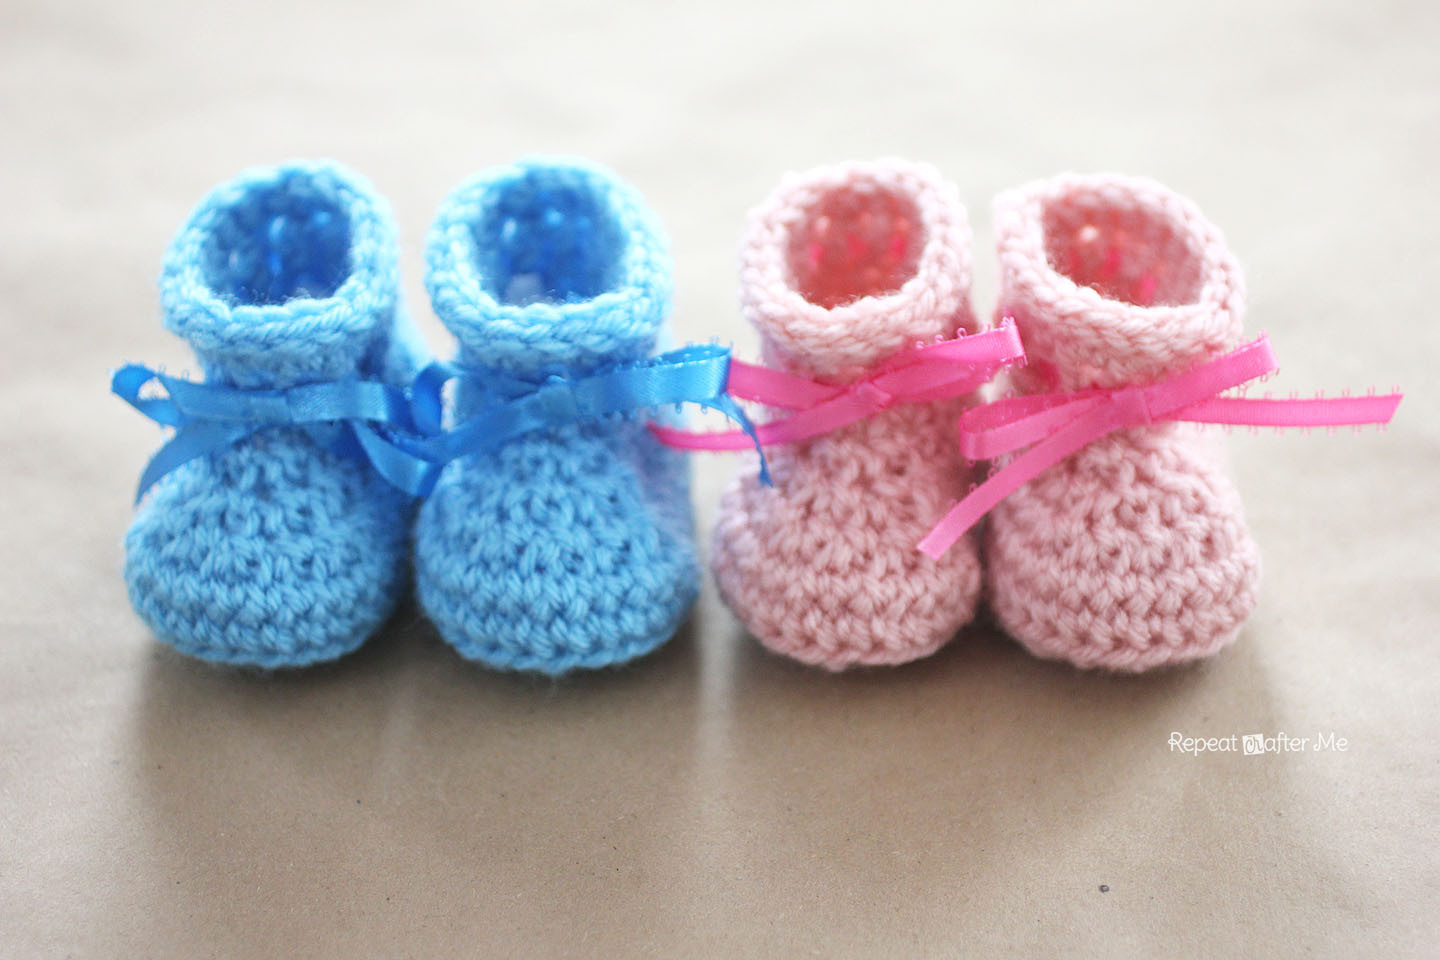 Newborn Crochet Patterns Luxury Crochet Newborn Baby Shoes Design with Chain and Free Of Incredible 41 Ideas Newborn Crochet Patterns